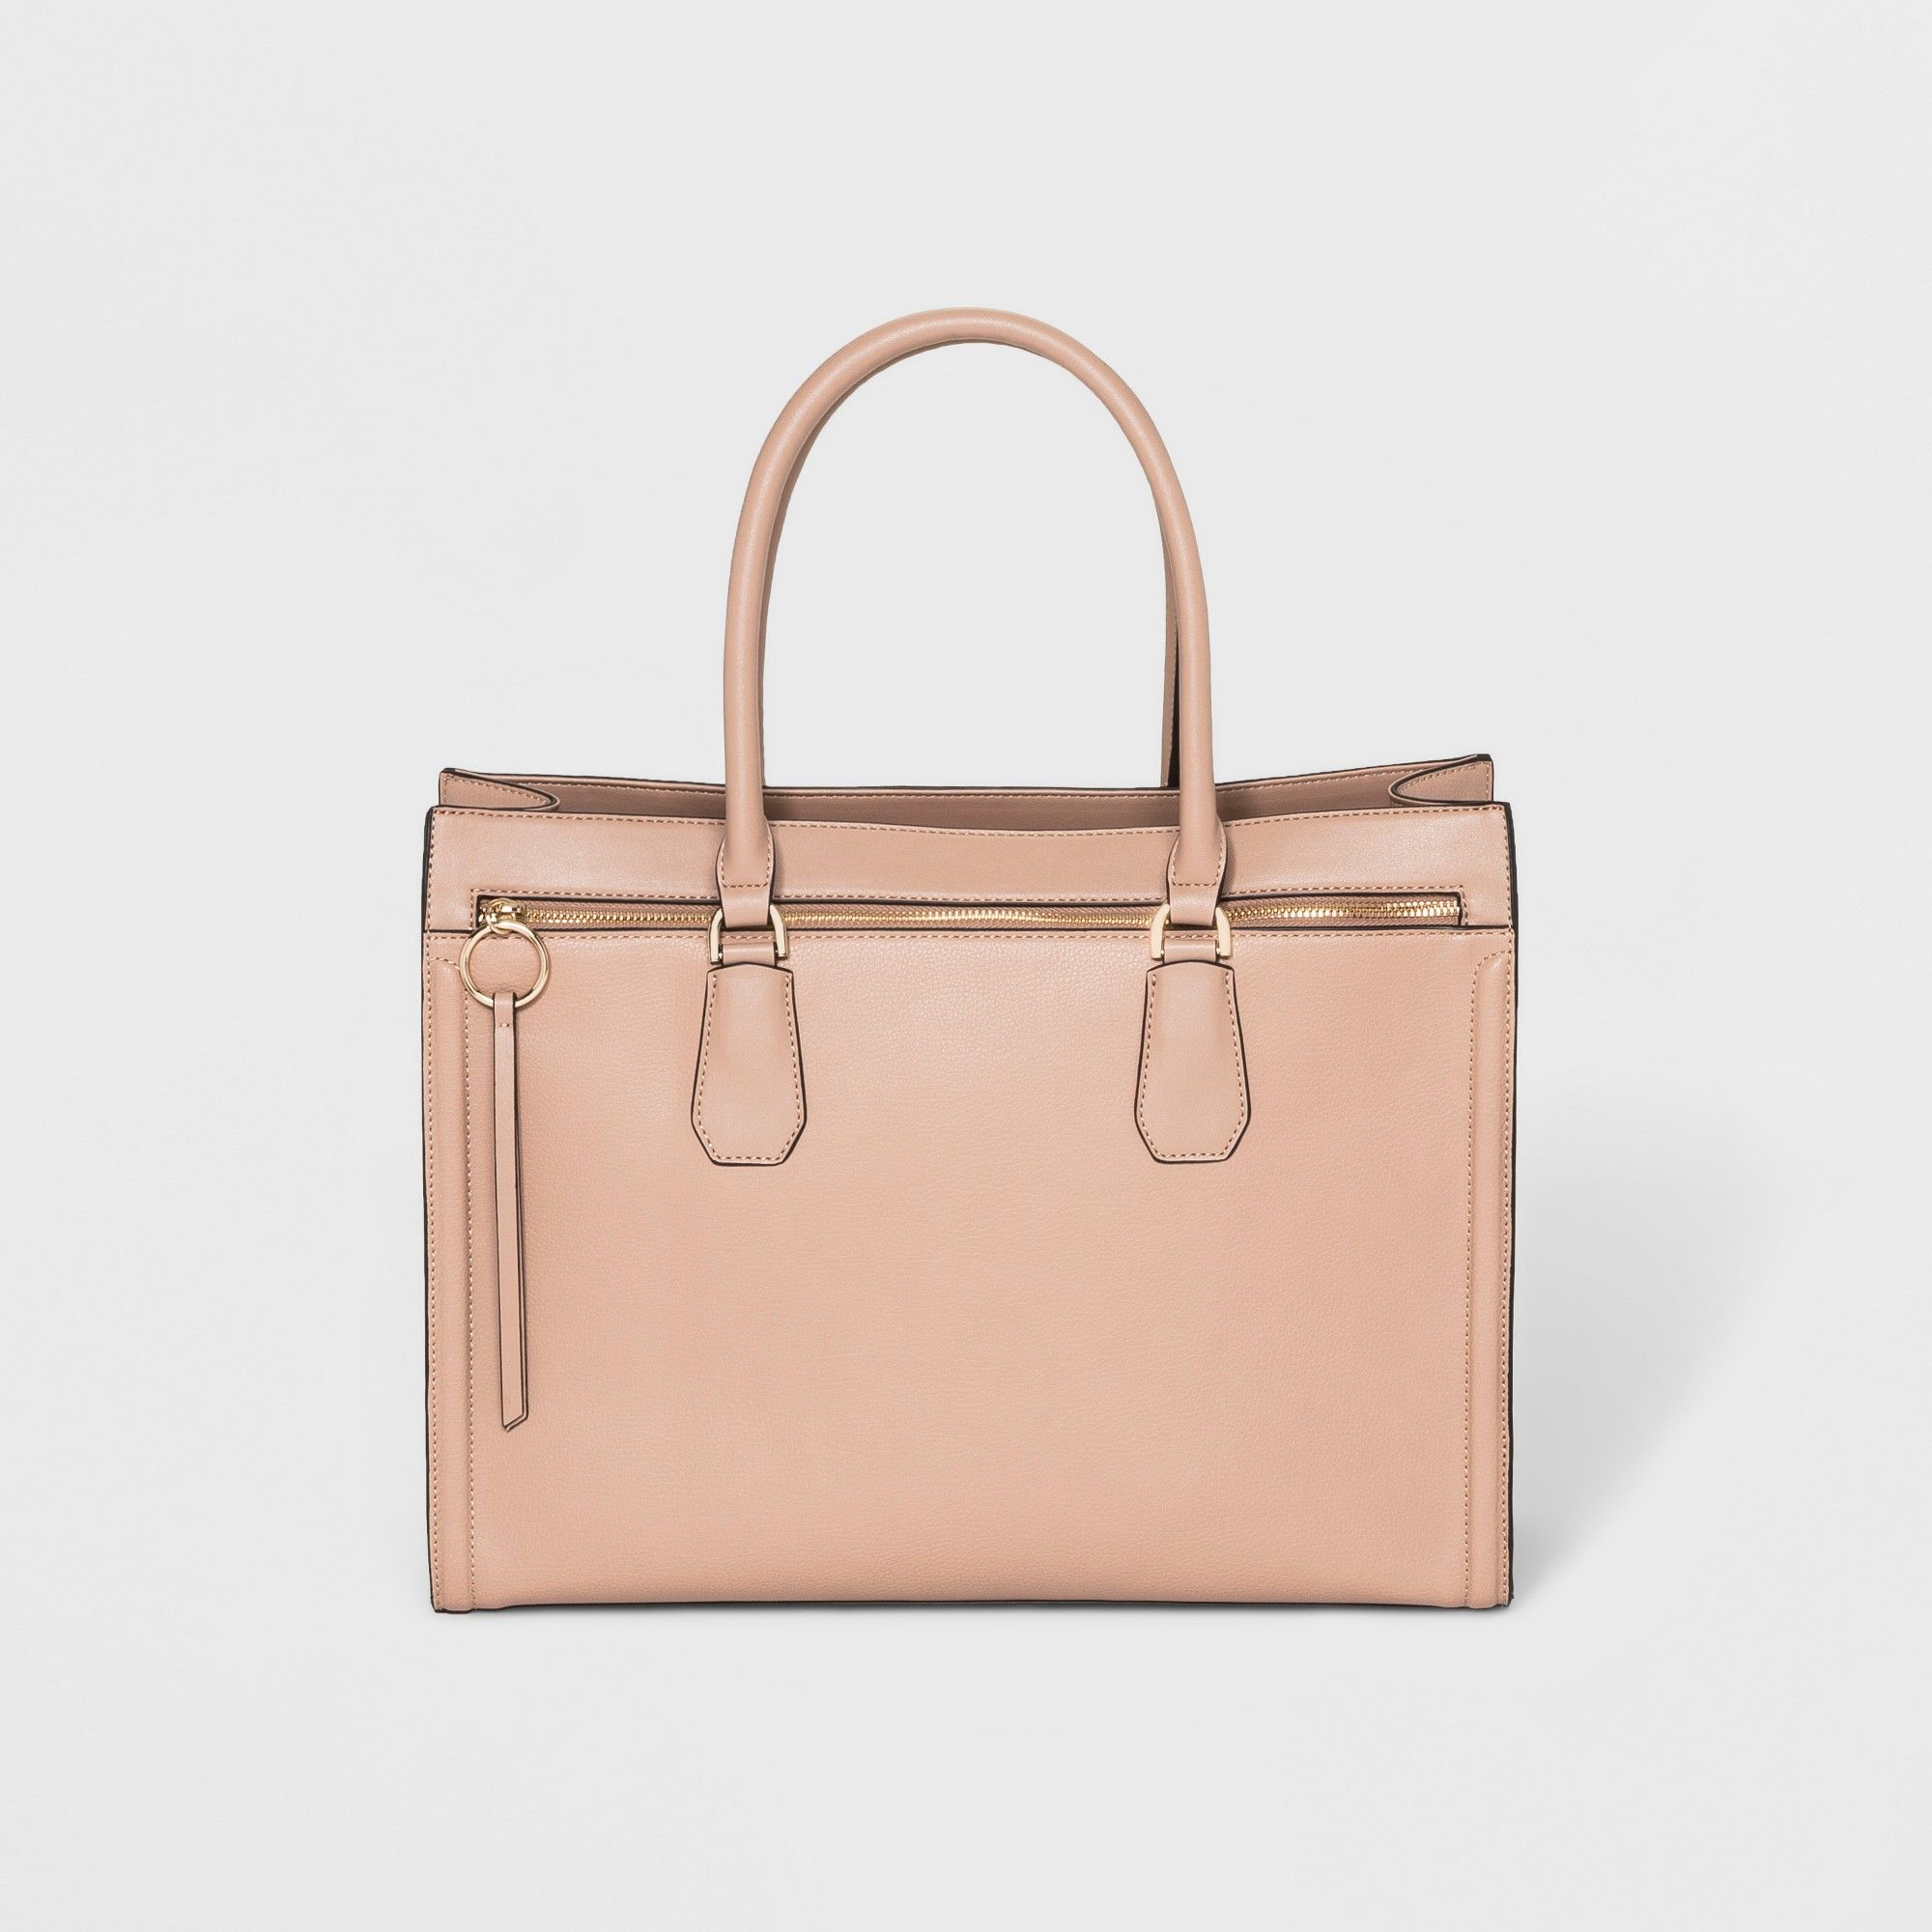 29d5adfc34cfe Ring Work Tote Handbag - A New Day Brown Clay, Women's, Size: Large ...